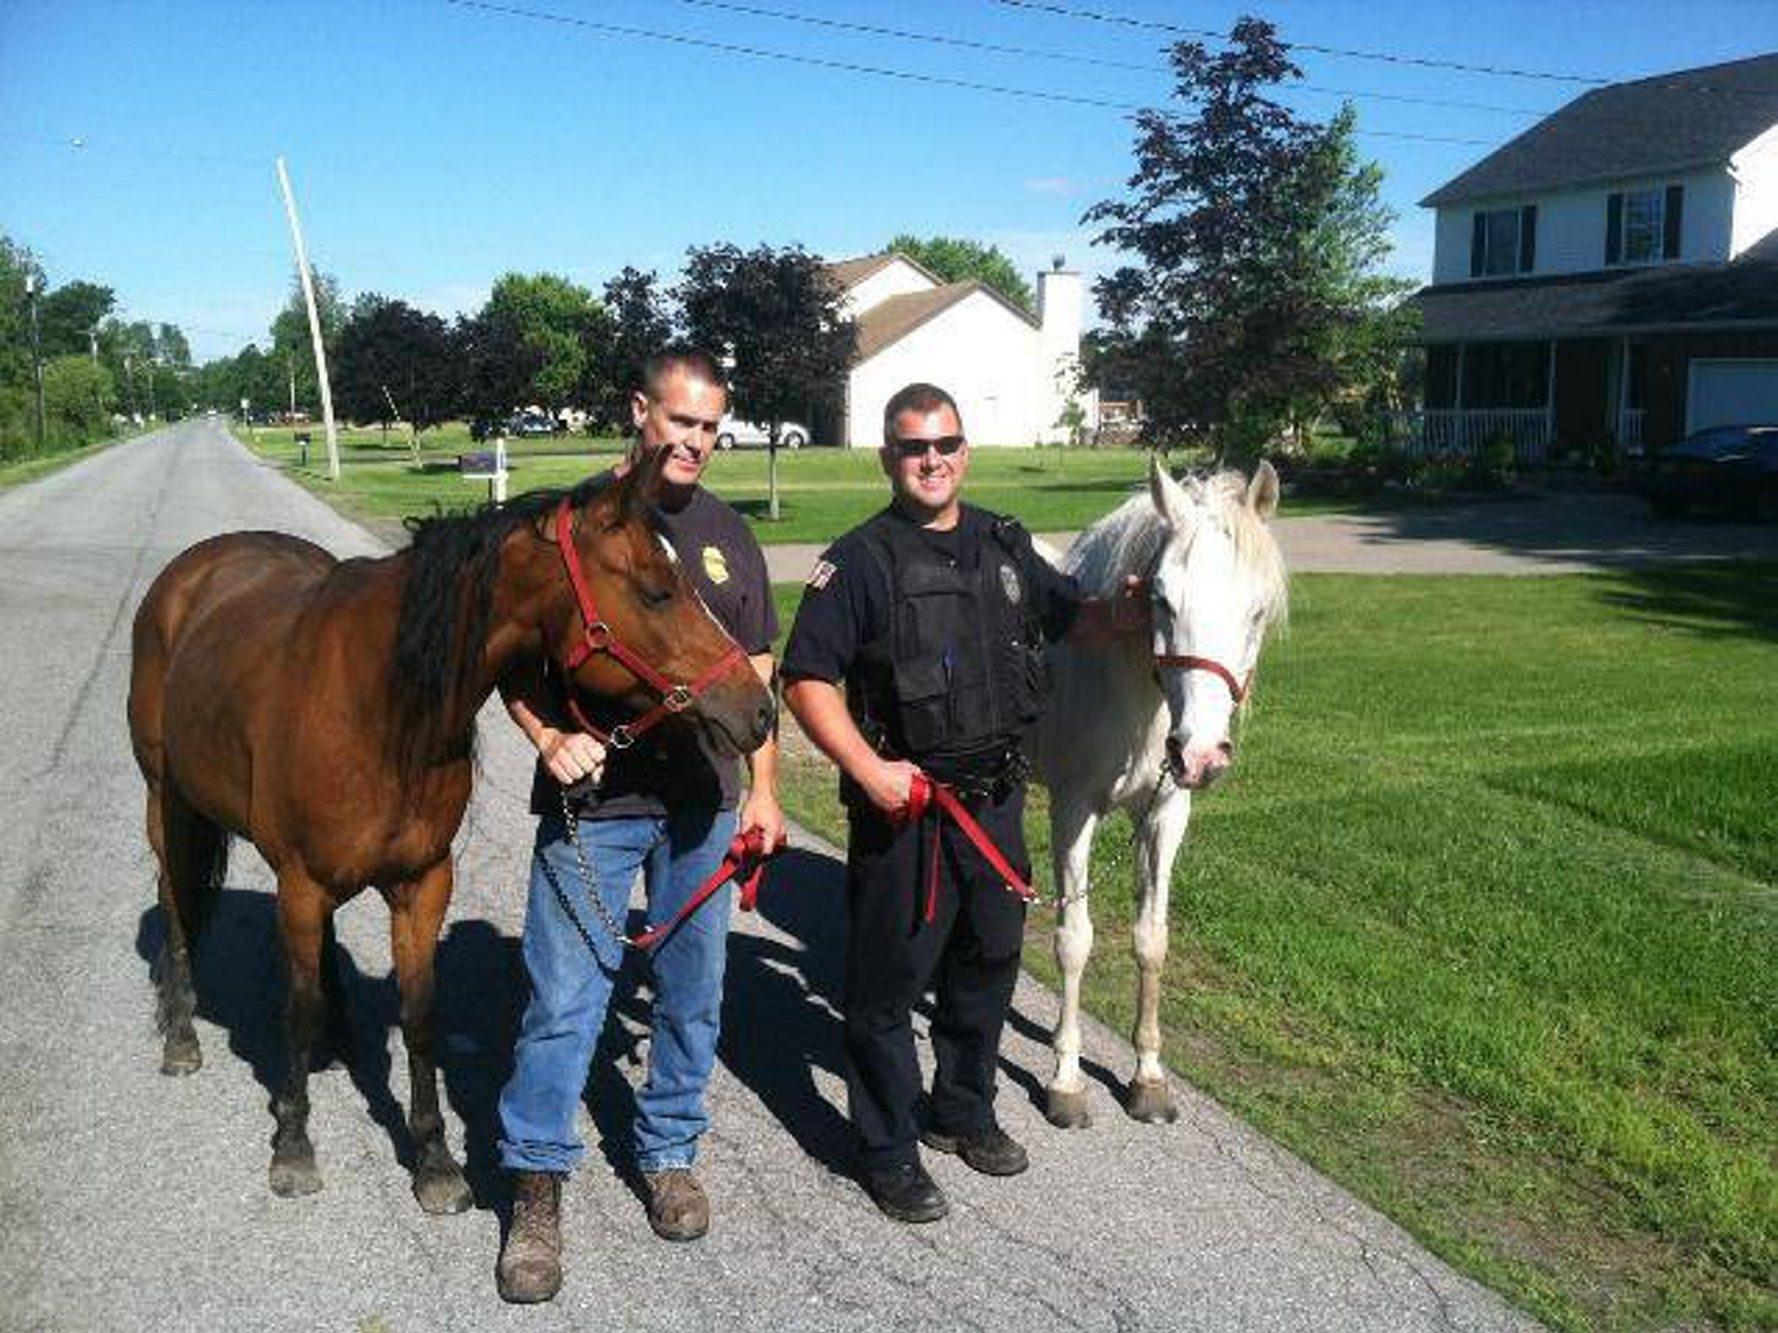 Officer Brian Firestone and a neighbor, Mark Zulawski, returned the escaped horses, Molly, left, and Akira, to their Lancaster owner Tuesday afternoon.